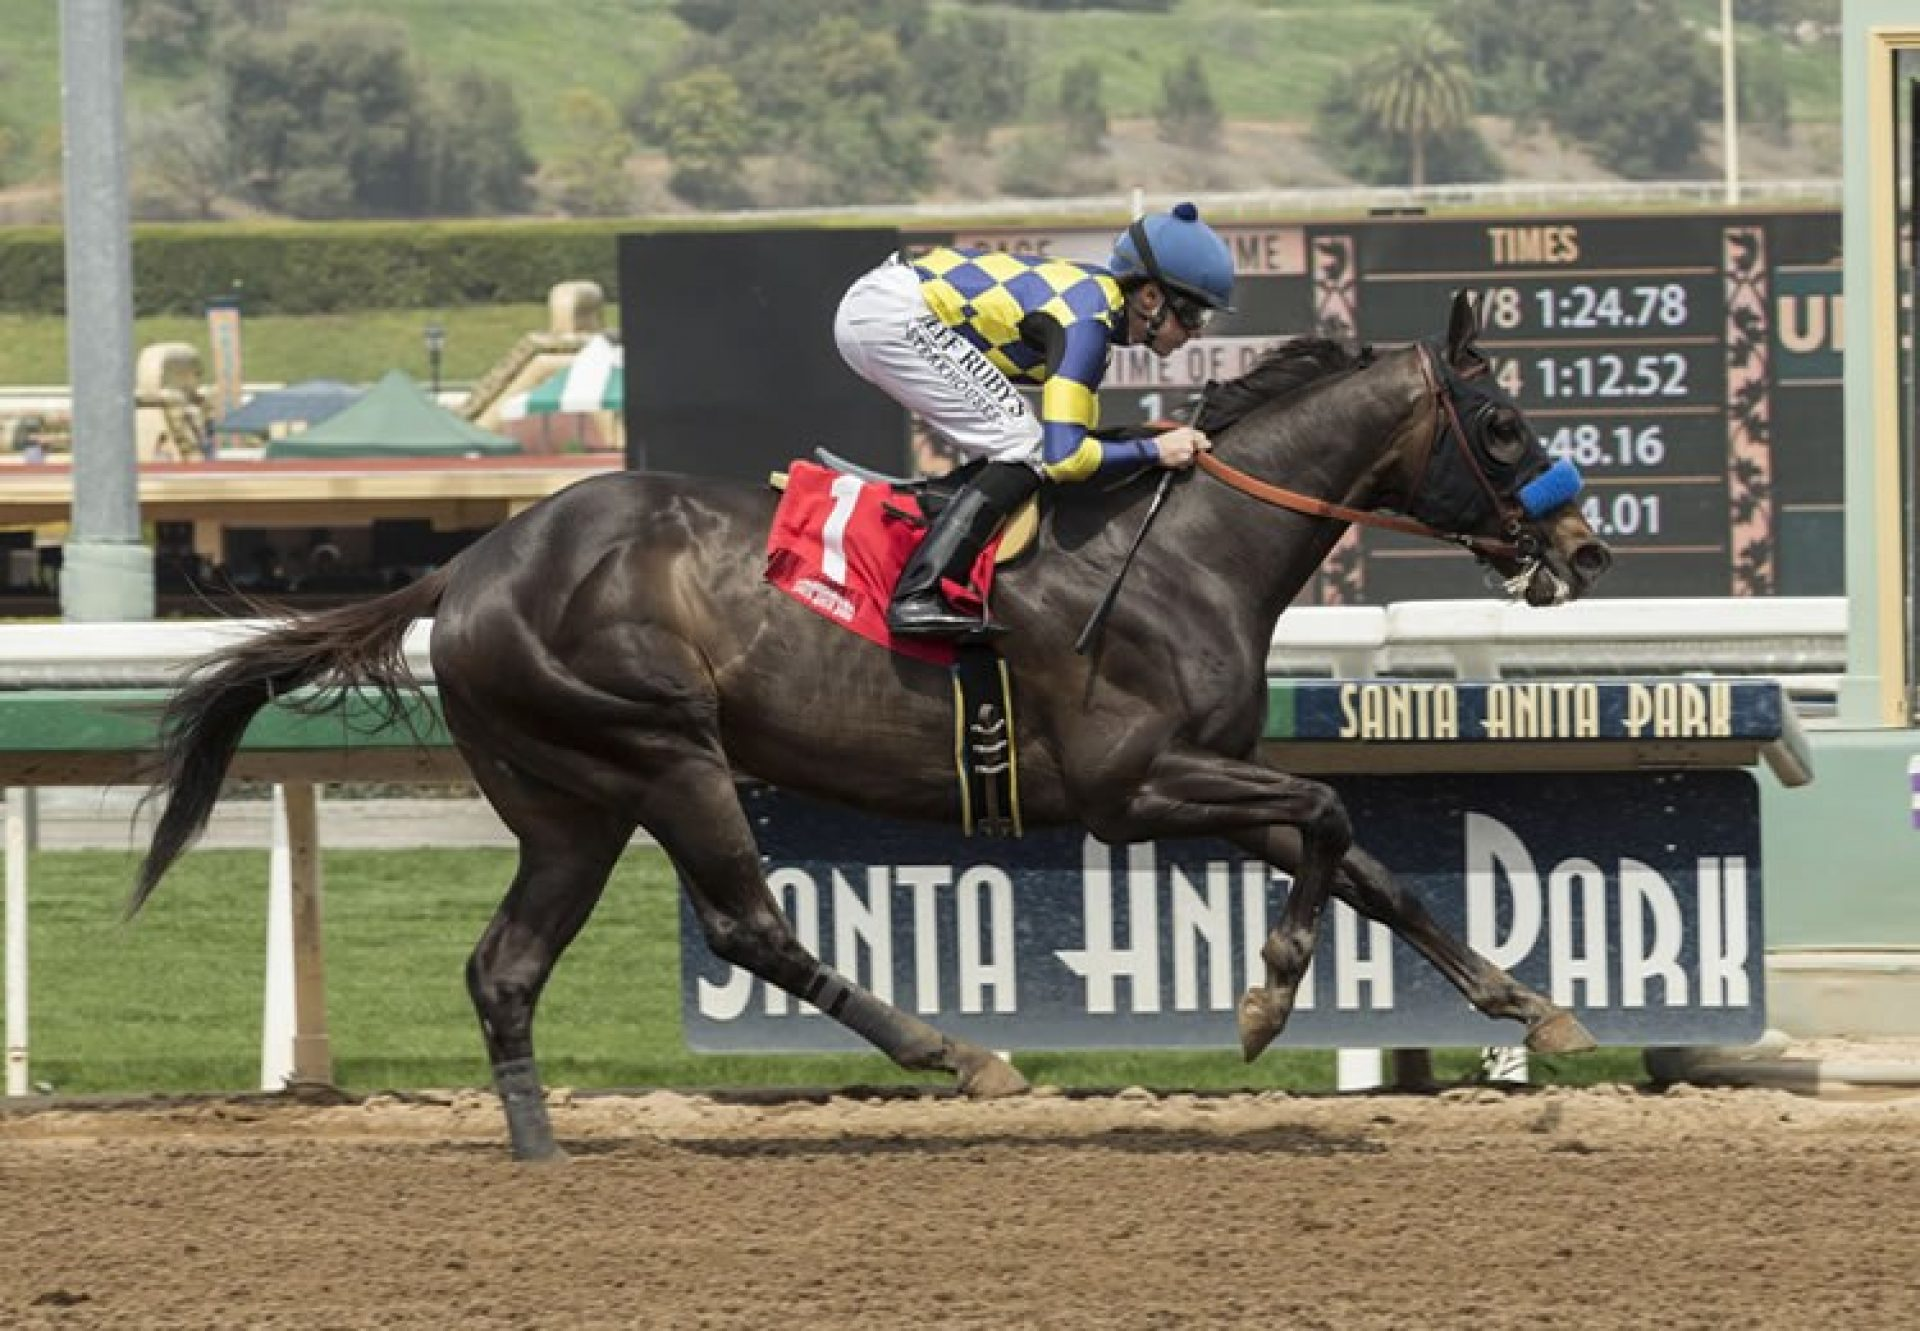 Dr Dorr (Lookin At Lucky) winning the G2 Californian Stakes at Santa Anita